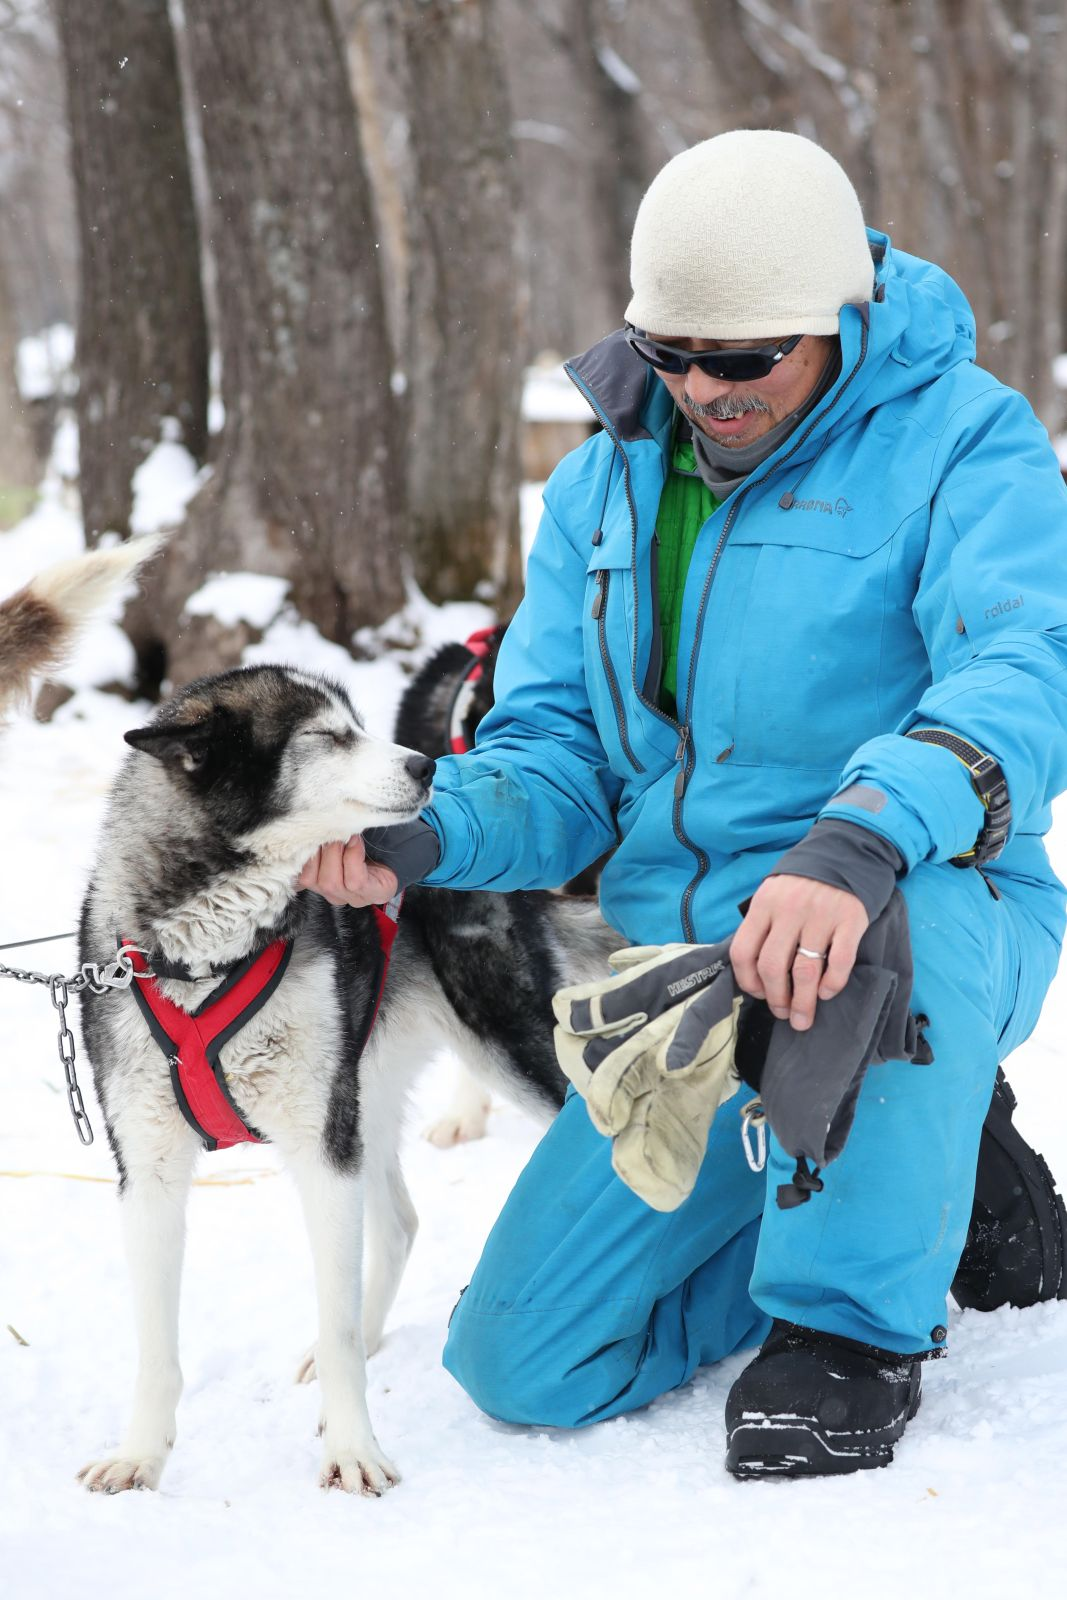 Hokkaido Sled Dogs Build Trust with Their Snow Tracks